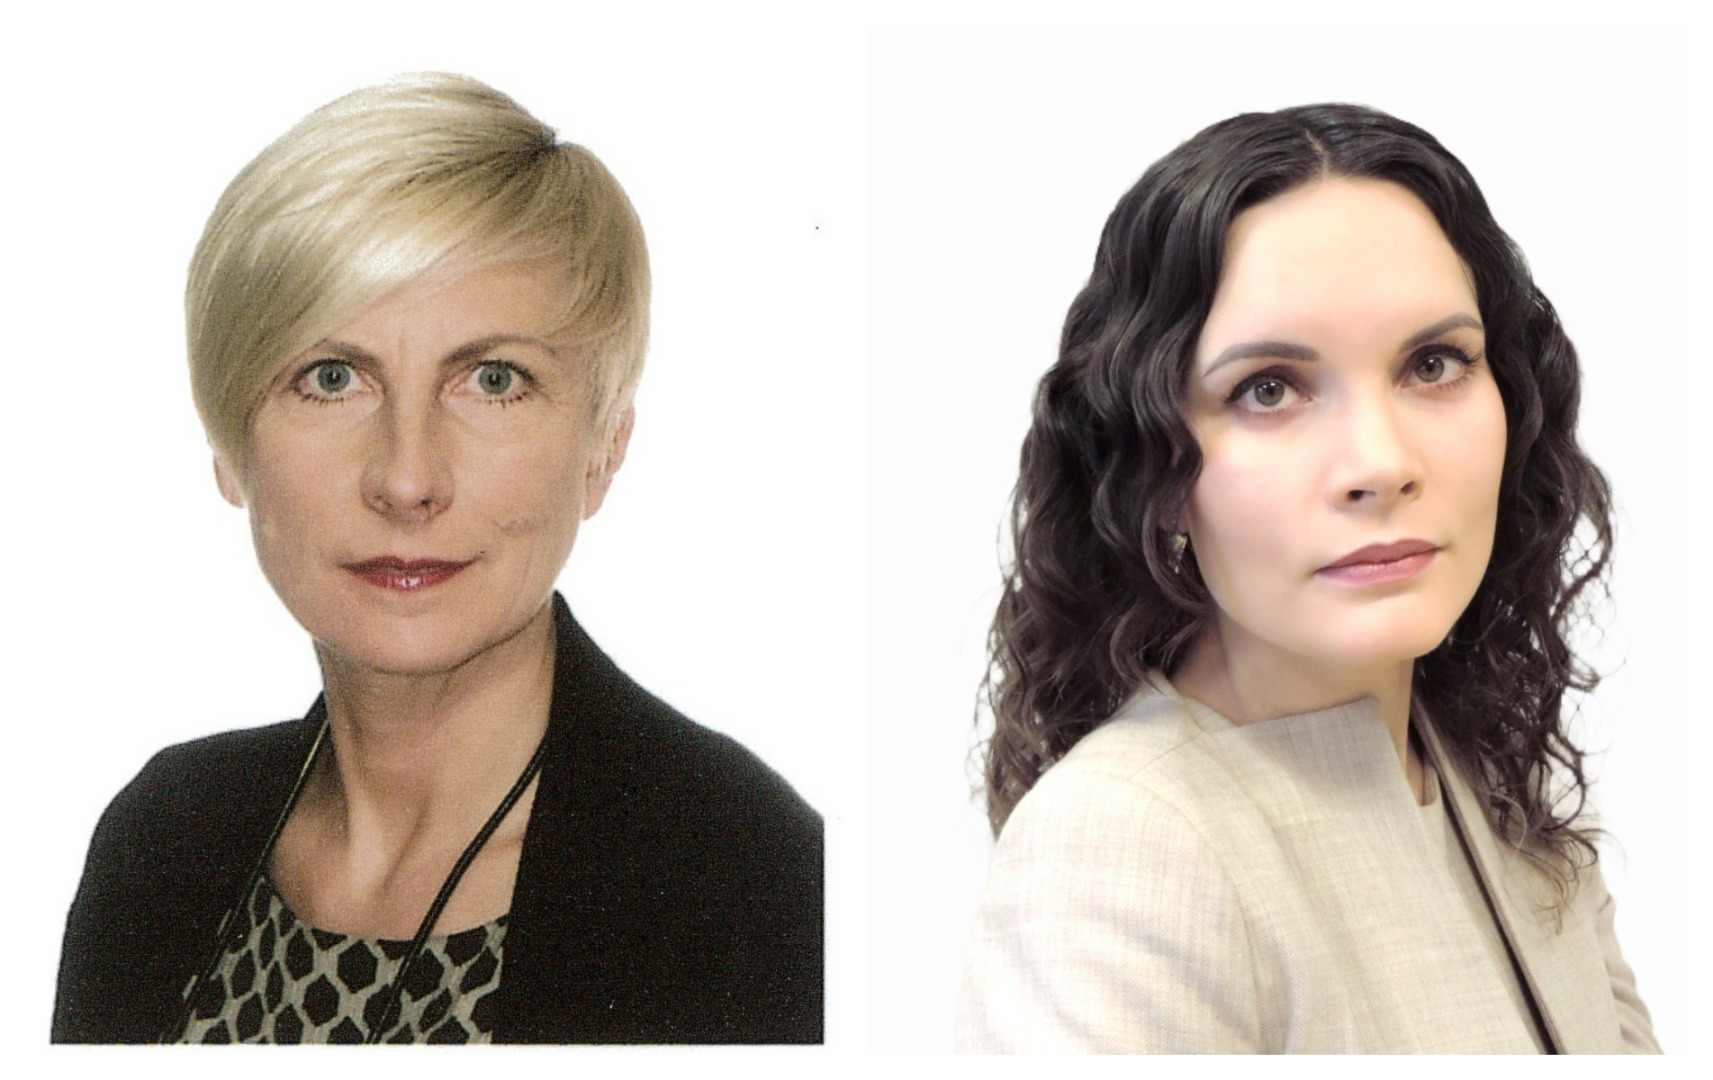 05.05.2020. By the decision of the Judicial Council, Ieva Viskere, Judge of the Administrative Regional Court and Dzintra Balta, Judge of the Riga Regional Court, were transferred to the position of a judge of the Supreme Court. Ieva Viskere had applied for the position of a senator of the Department of Administrative Cases of the Senate, but Dzintra Balta had applied for the position of a senator of the Department of Civil Cases of the Senate. Their candidacies were also accepted at the meetings of the senators of the respective departments.